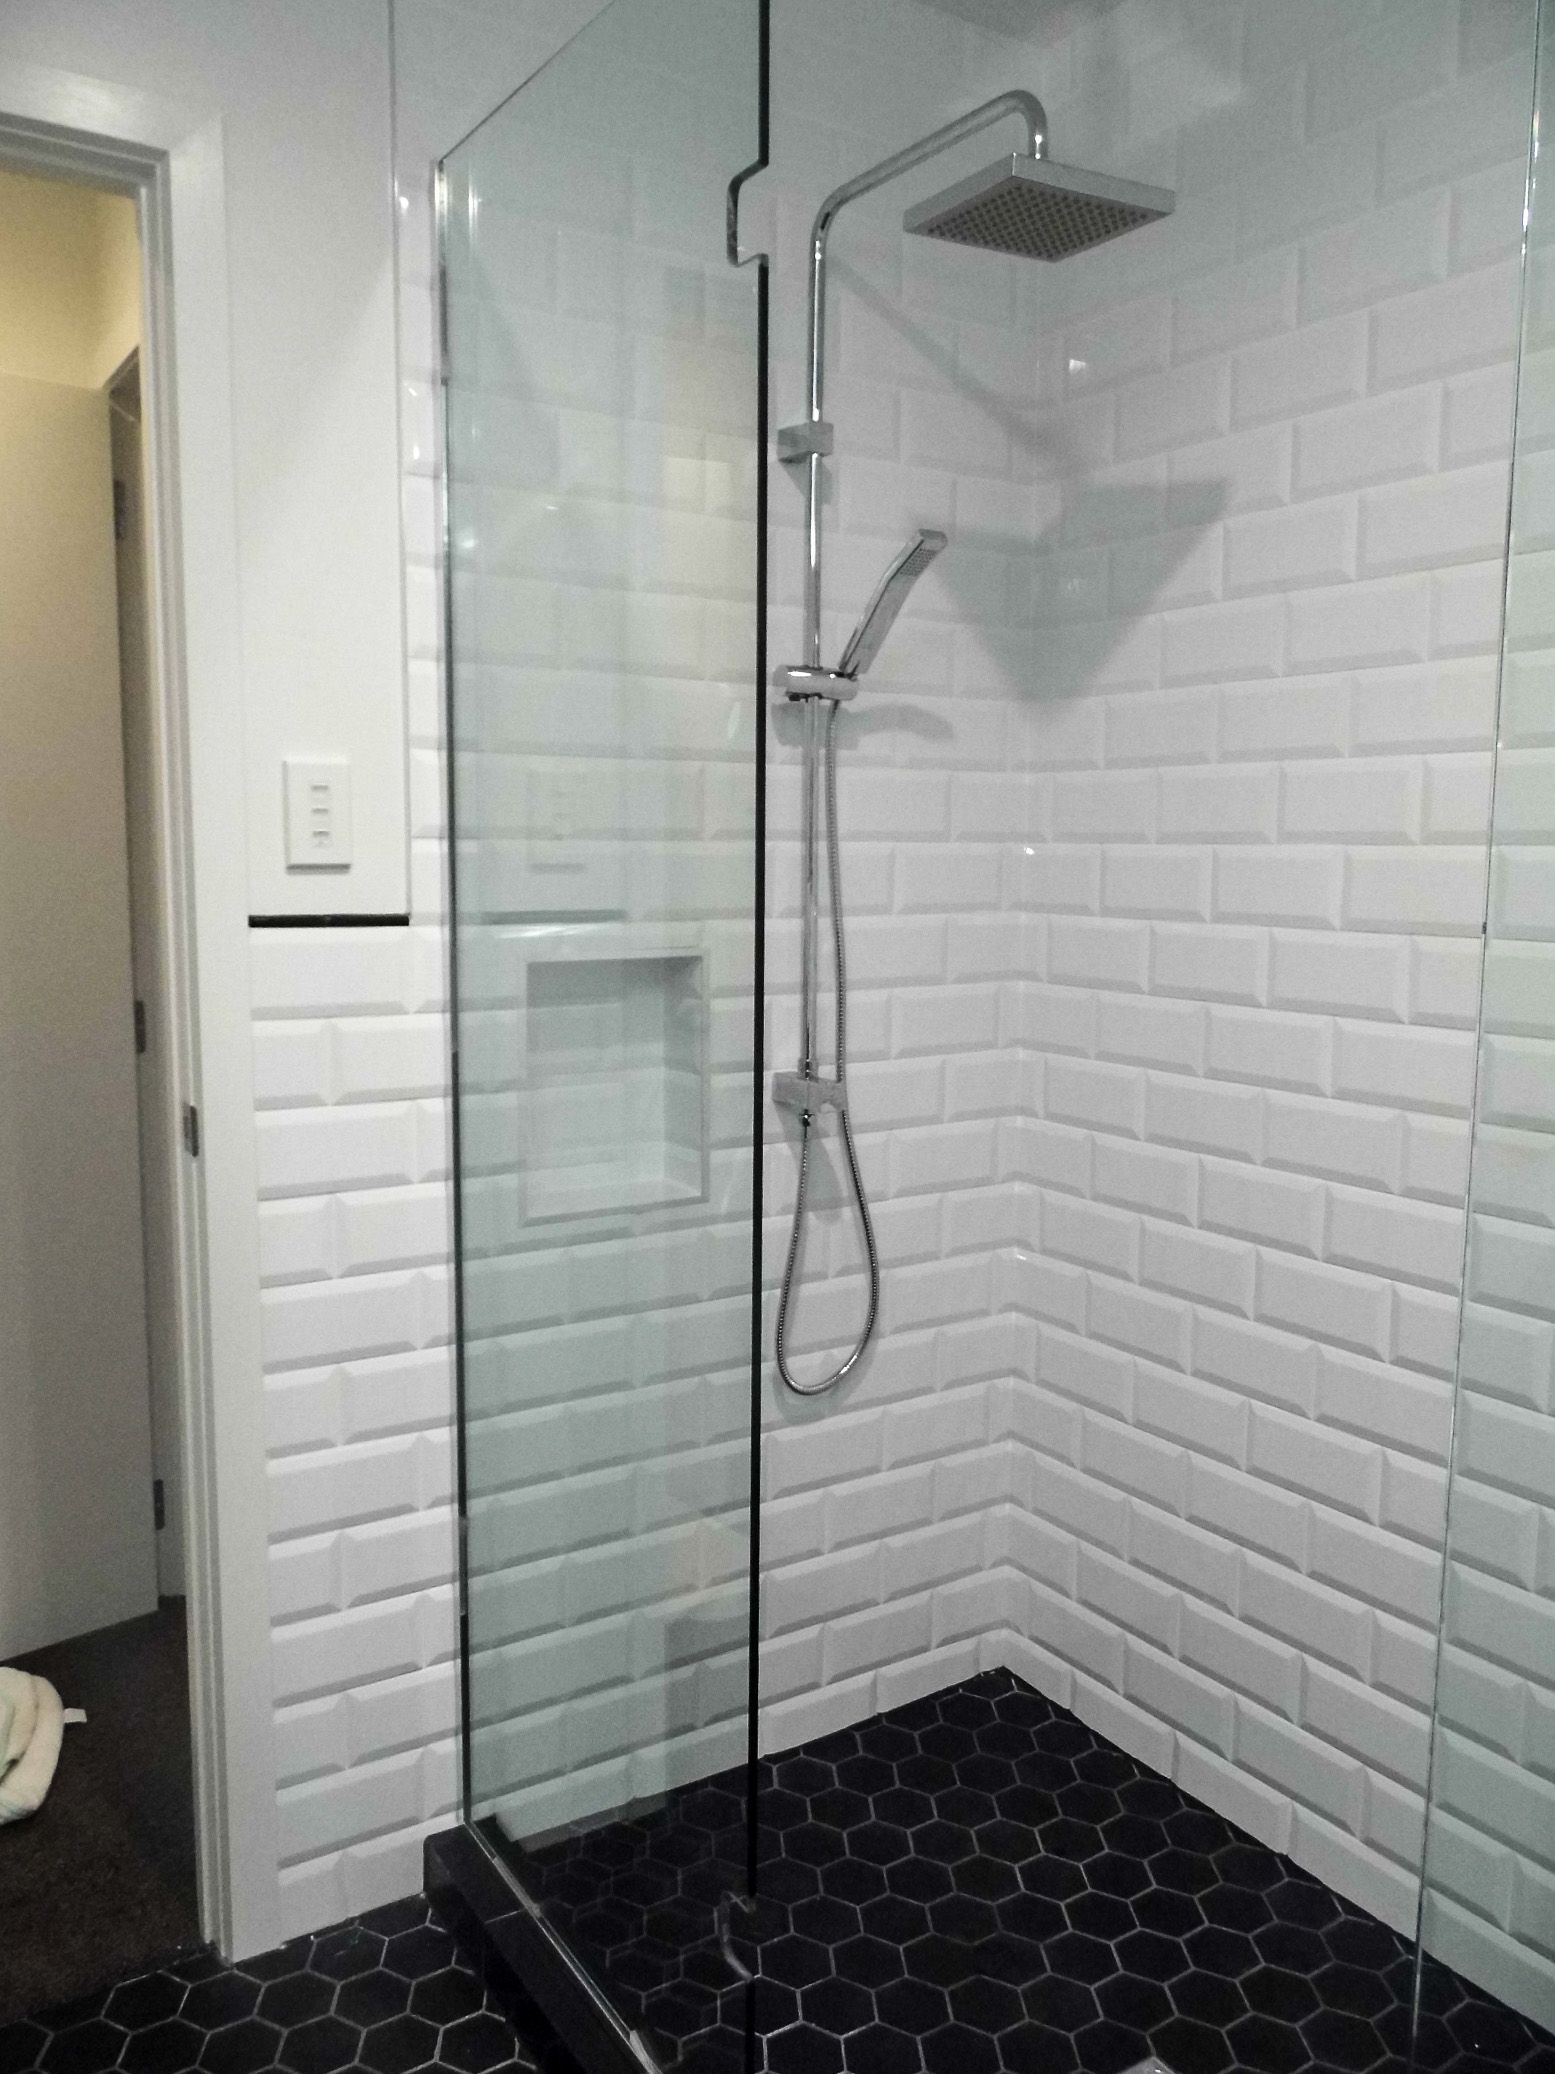 Charcoal bathroom tiles google search bathroom inspiration heritageimagesproductsbevelled wall tileswhite bevelled tiled shower and black hexagon floor tiles dailygadgetfo Choice Image